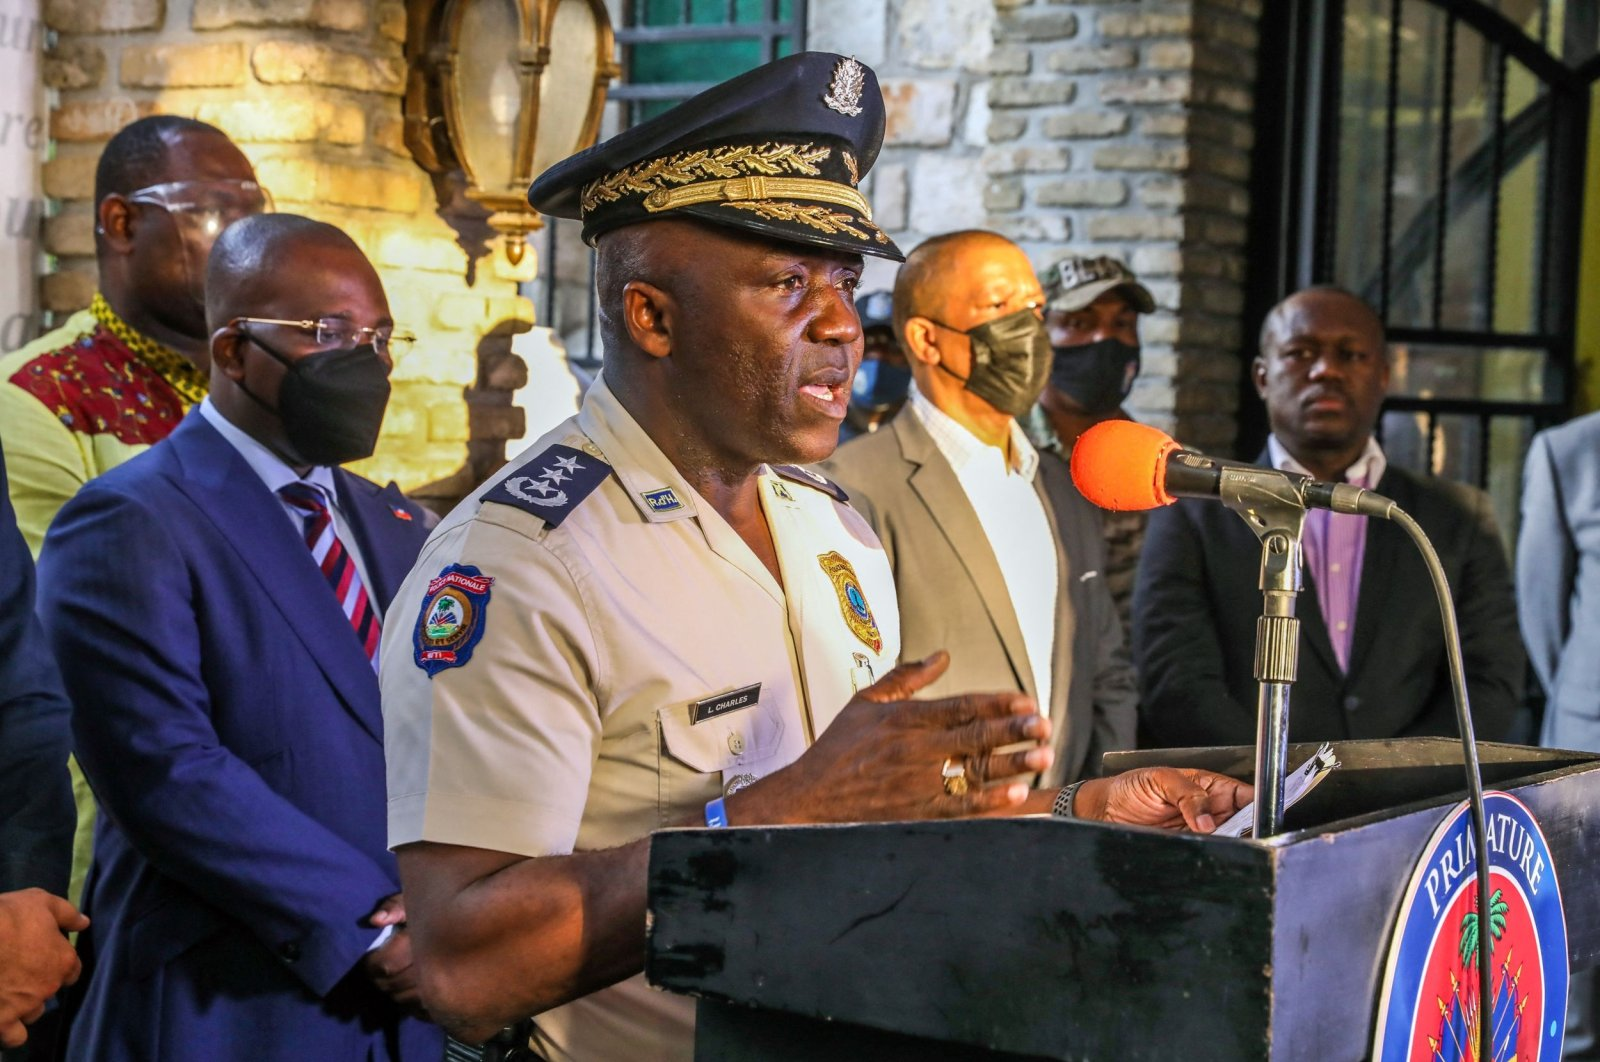 Haiti's Police General Director Leon Charles speaks during a press conference in Port-au Prince, Haiti, on July 11, 2021. (AFP Photo)